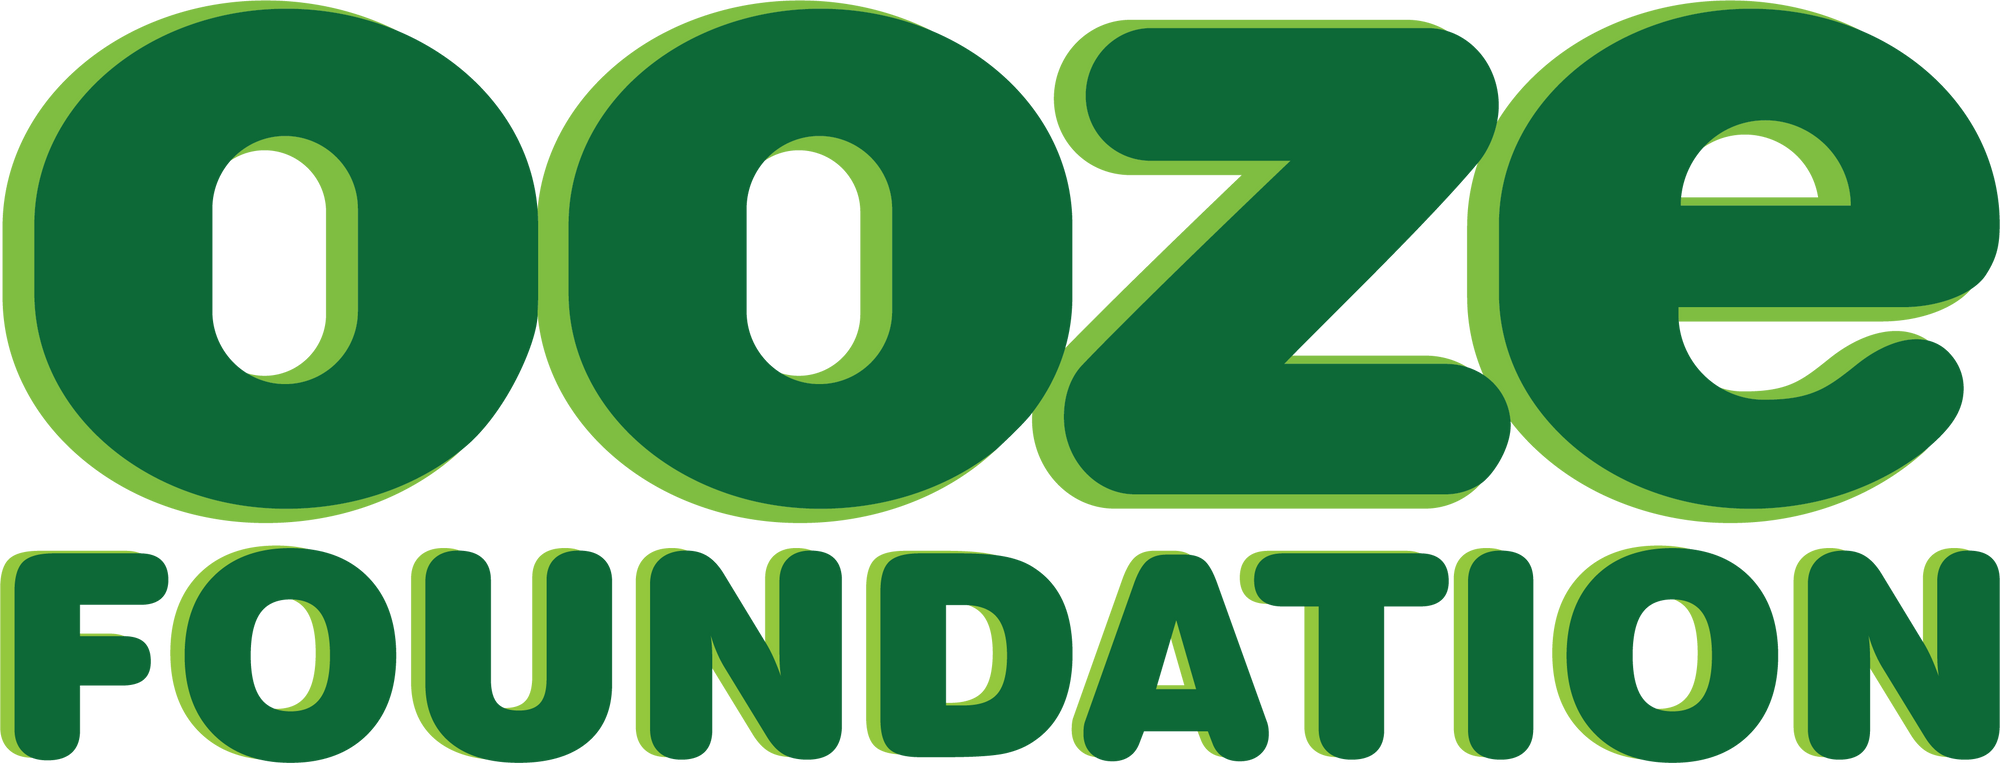 Ooze Foundation